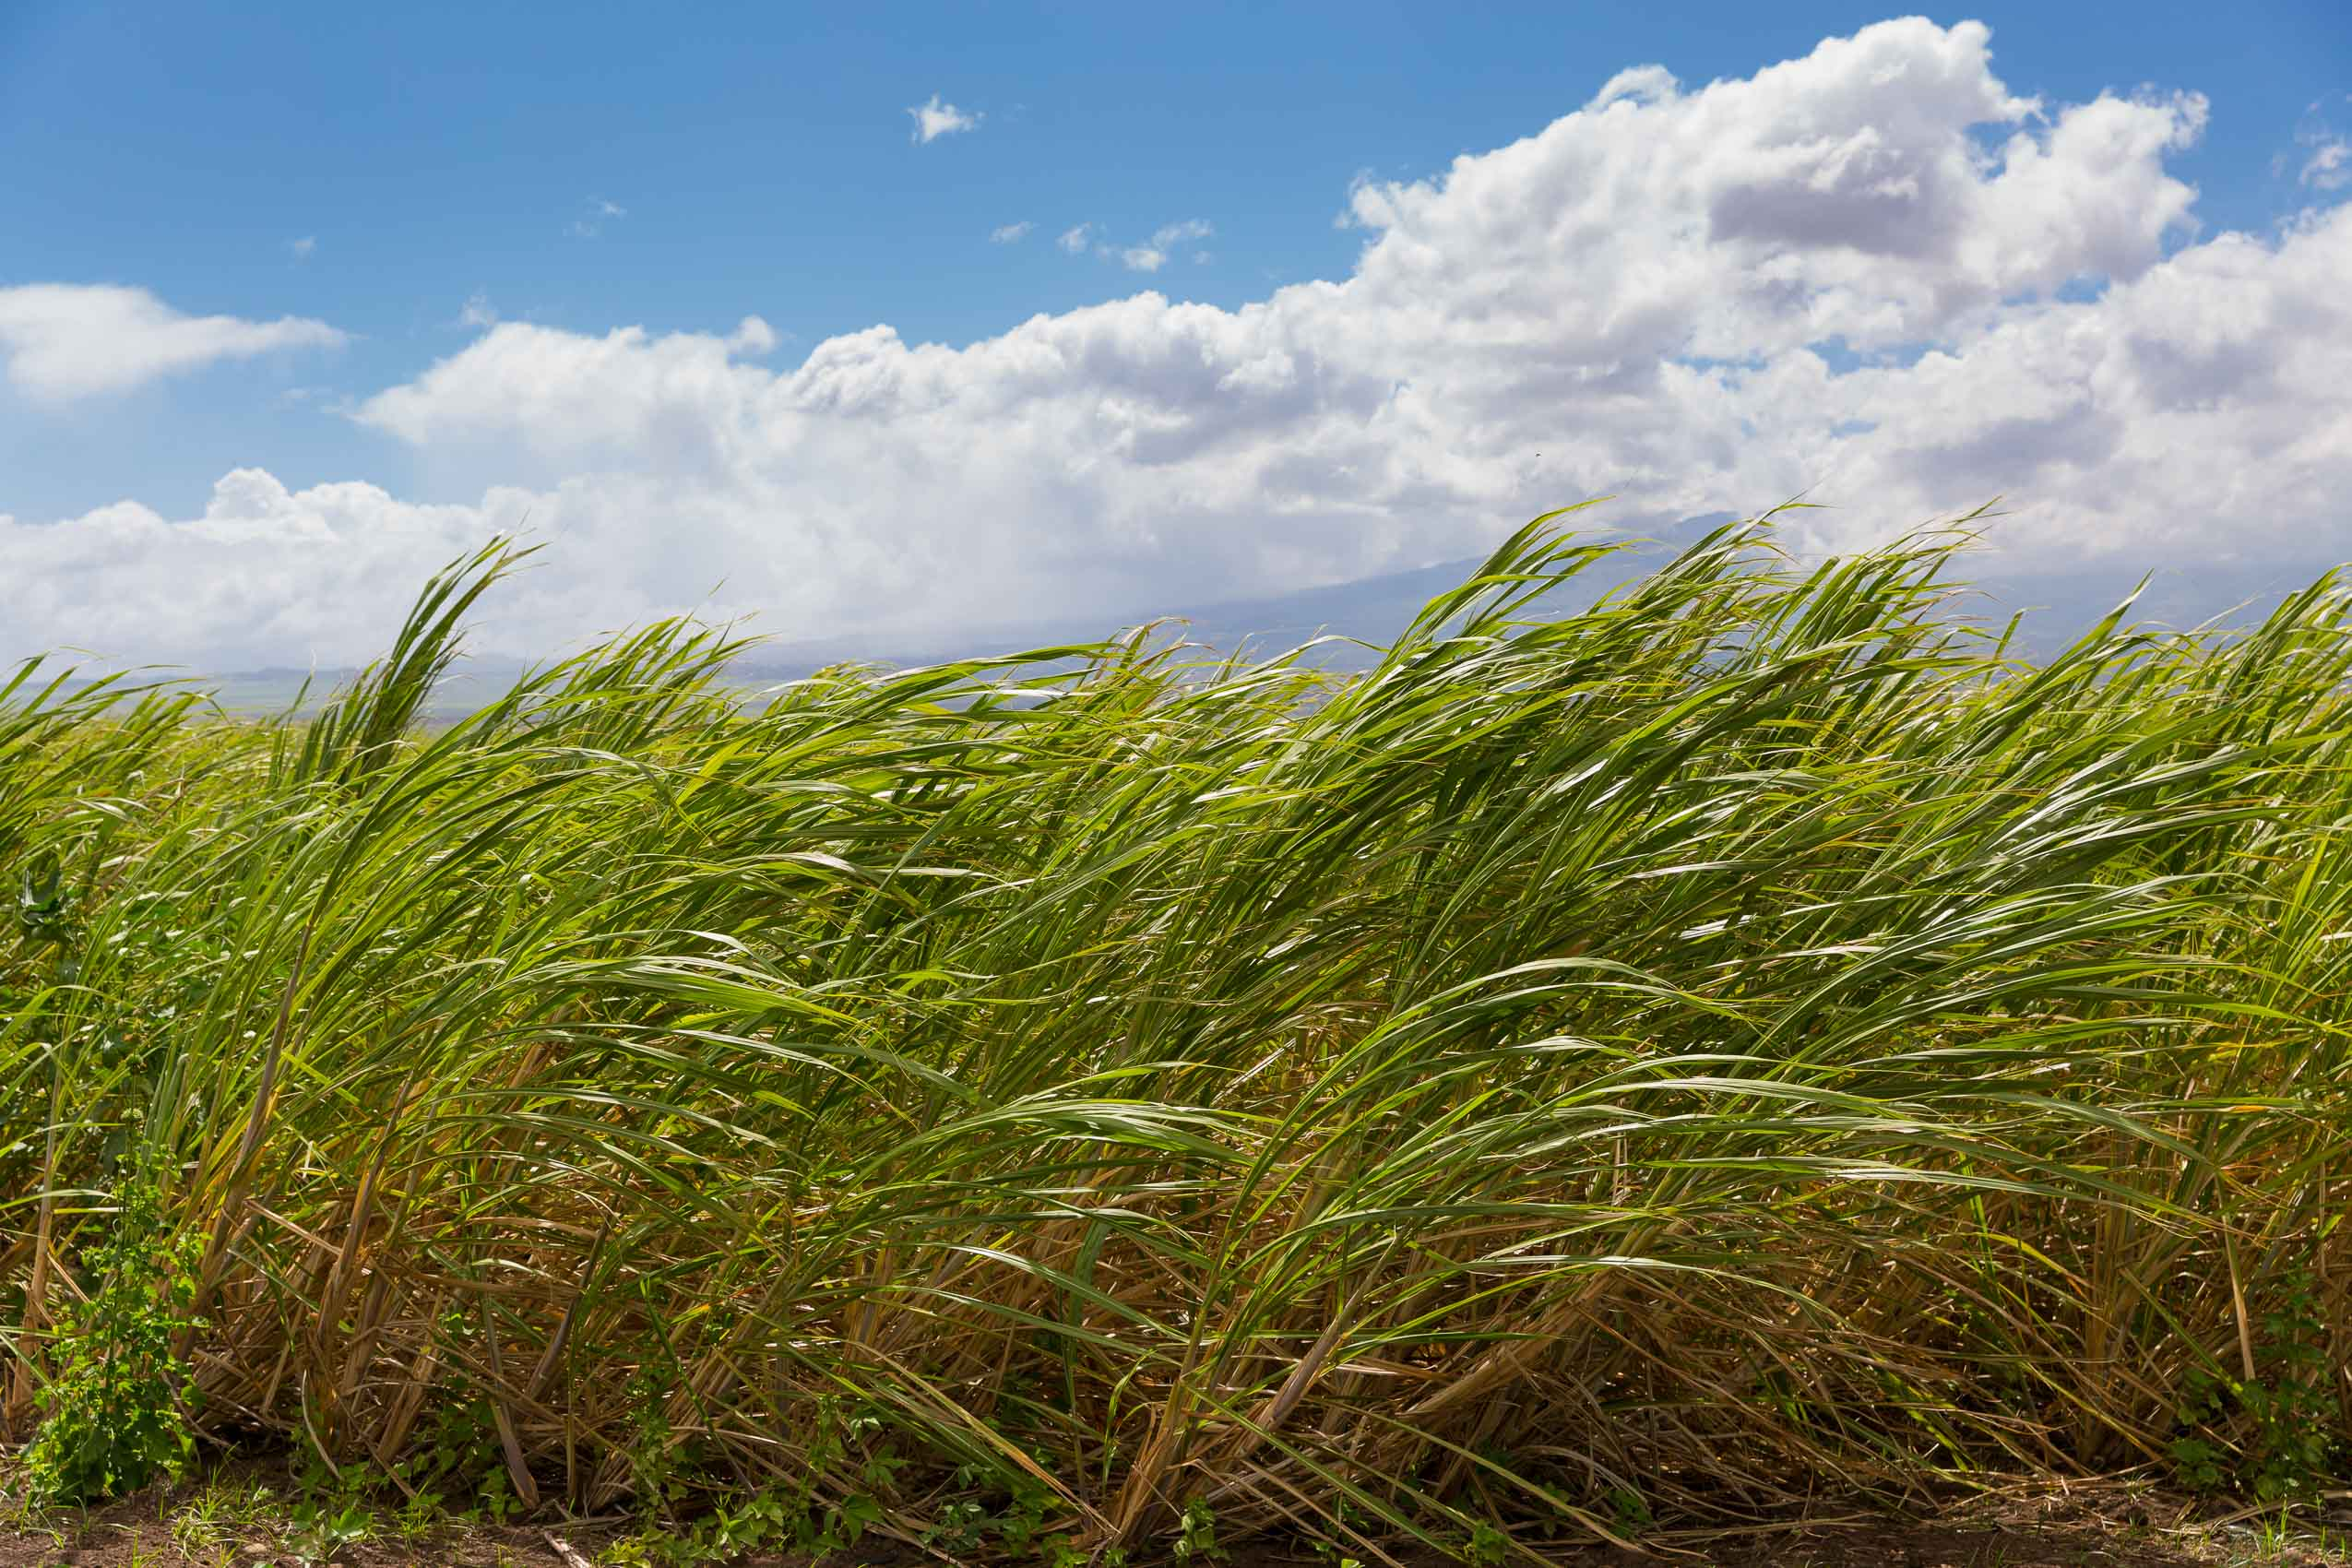 A crop of sugar cane on the island of Maui, Hawaii